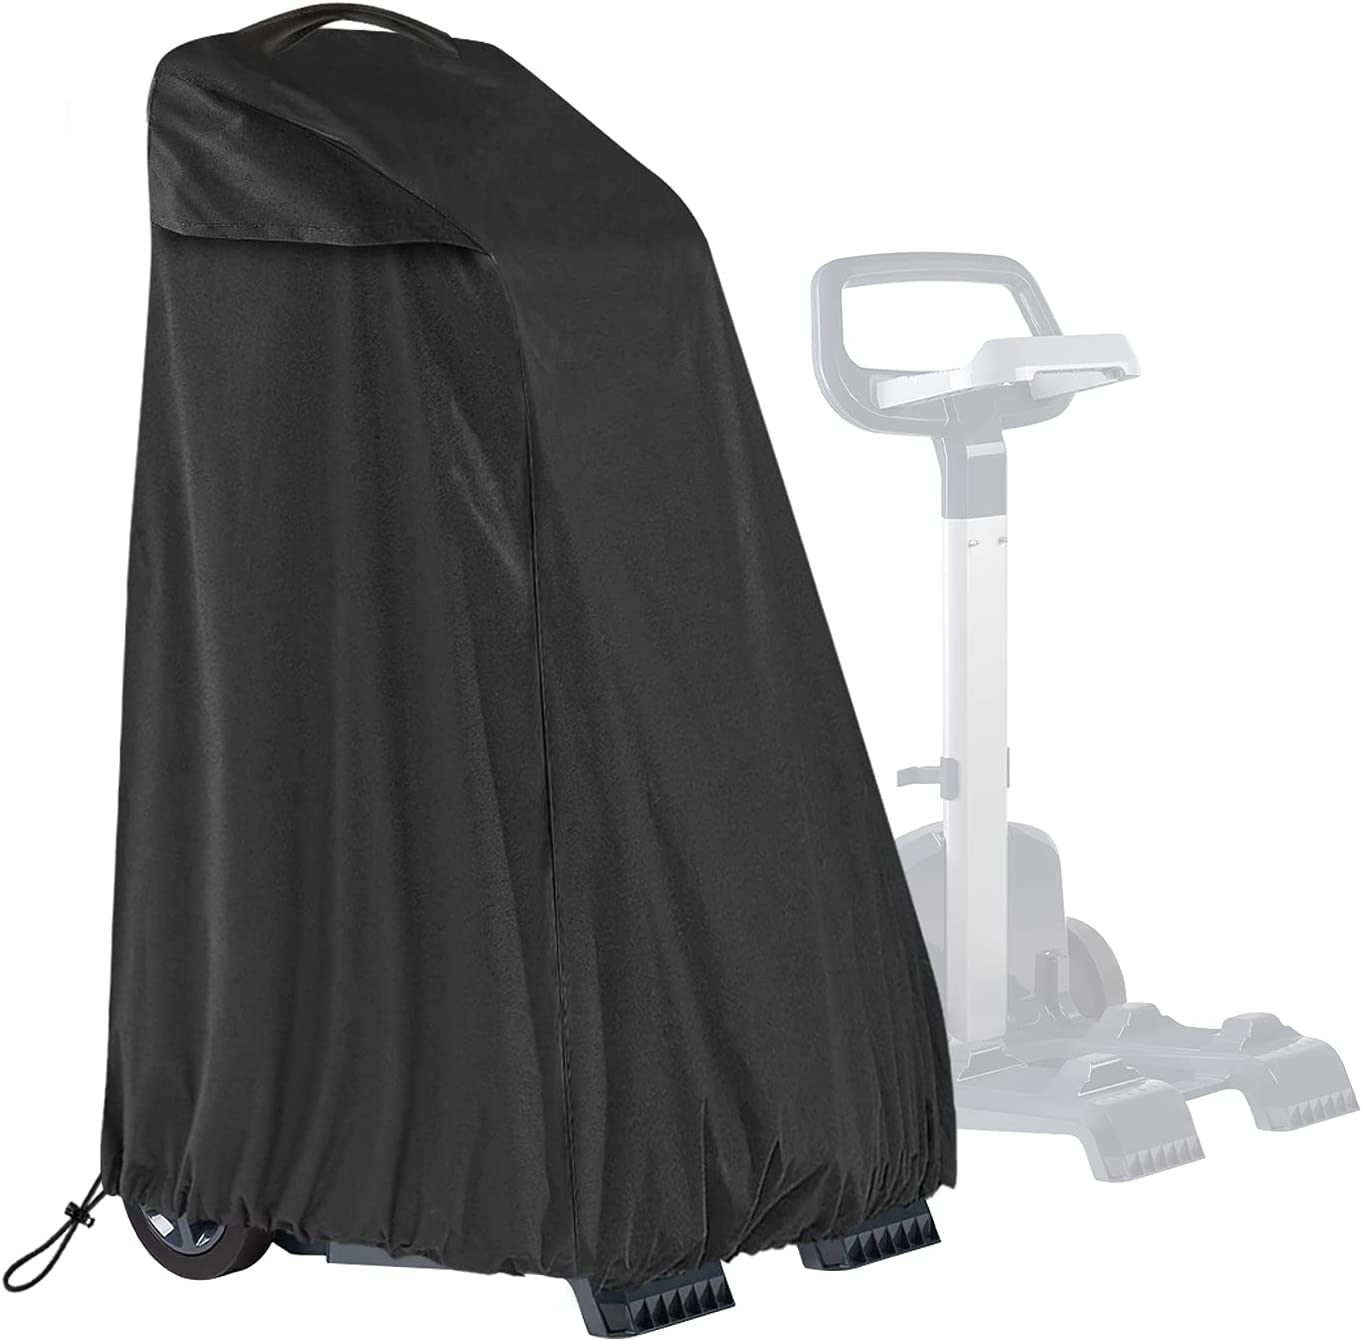 SELUGOVE Caddy Cover,Black Thick Fabric(Sunray/dust/Wind/Weather/rip Resistant) Robotic Pool Cleaner Cover